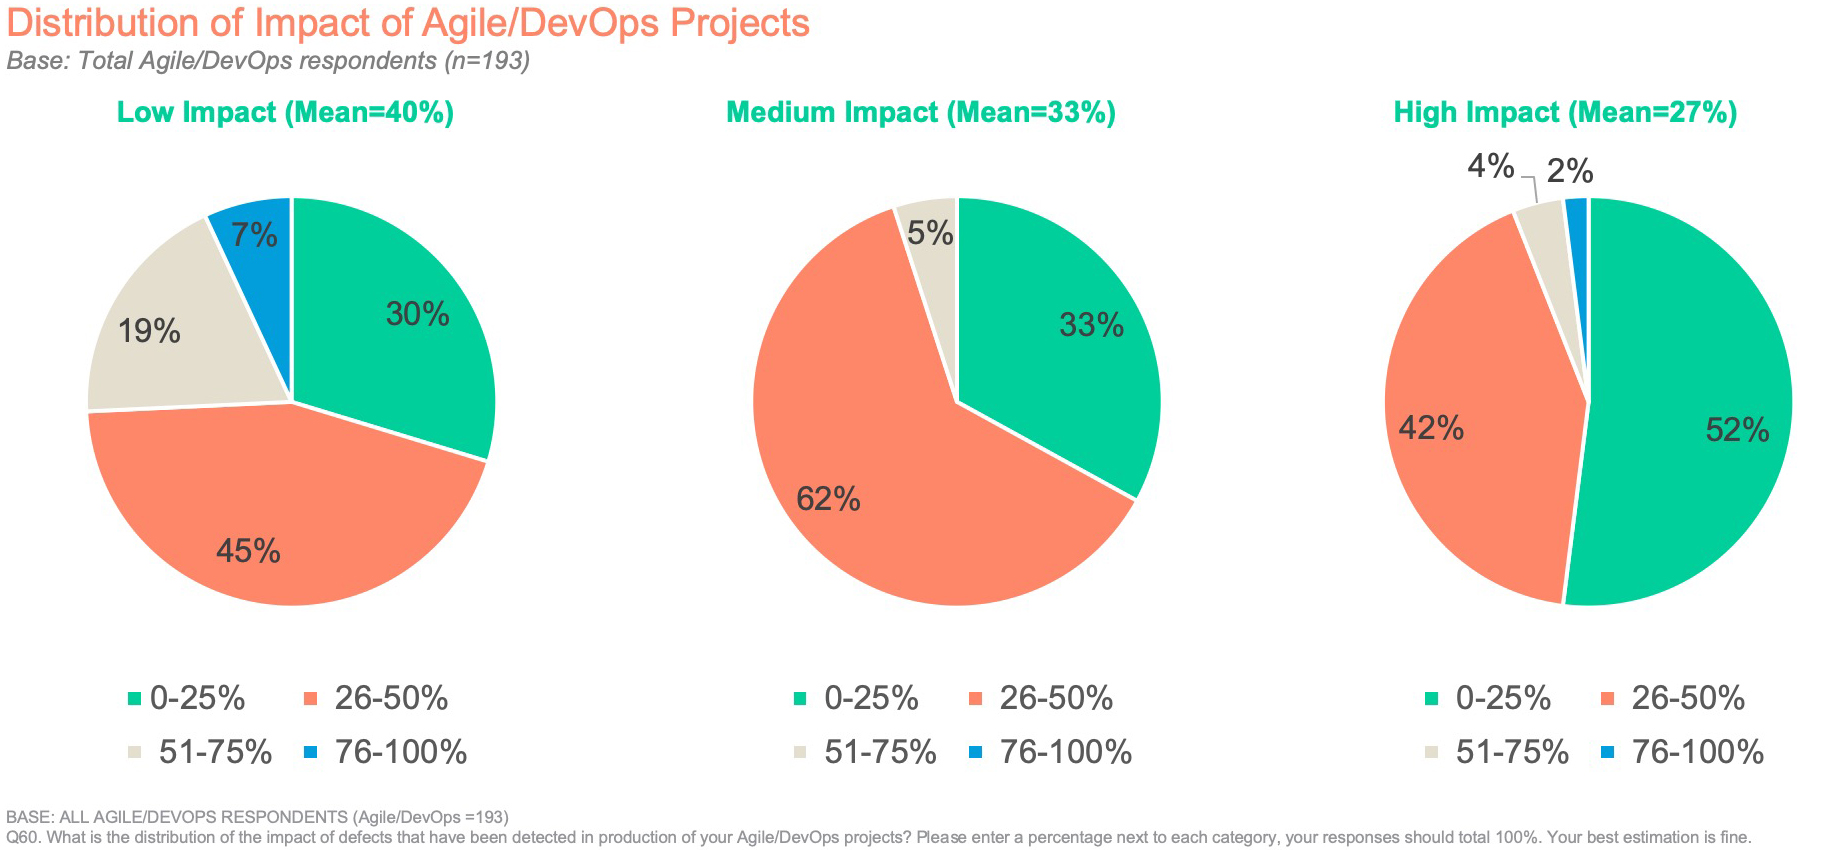 Distribution of Impact of Agile/DevOps Projects